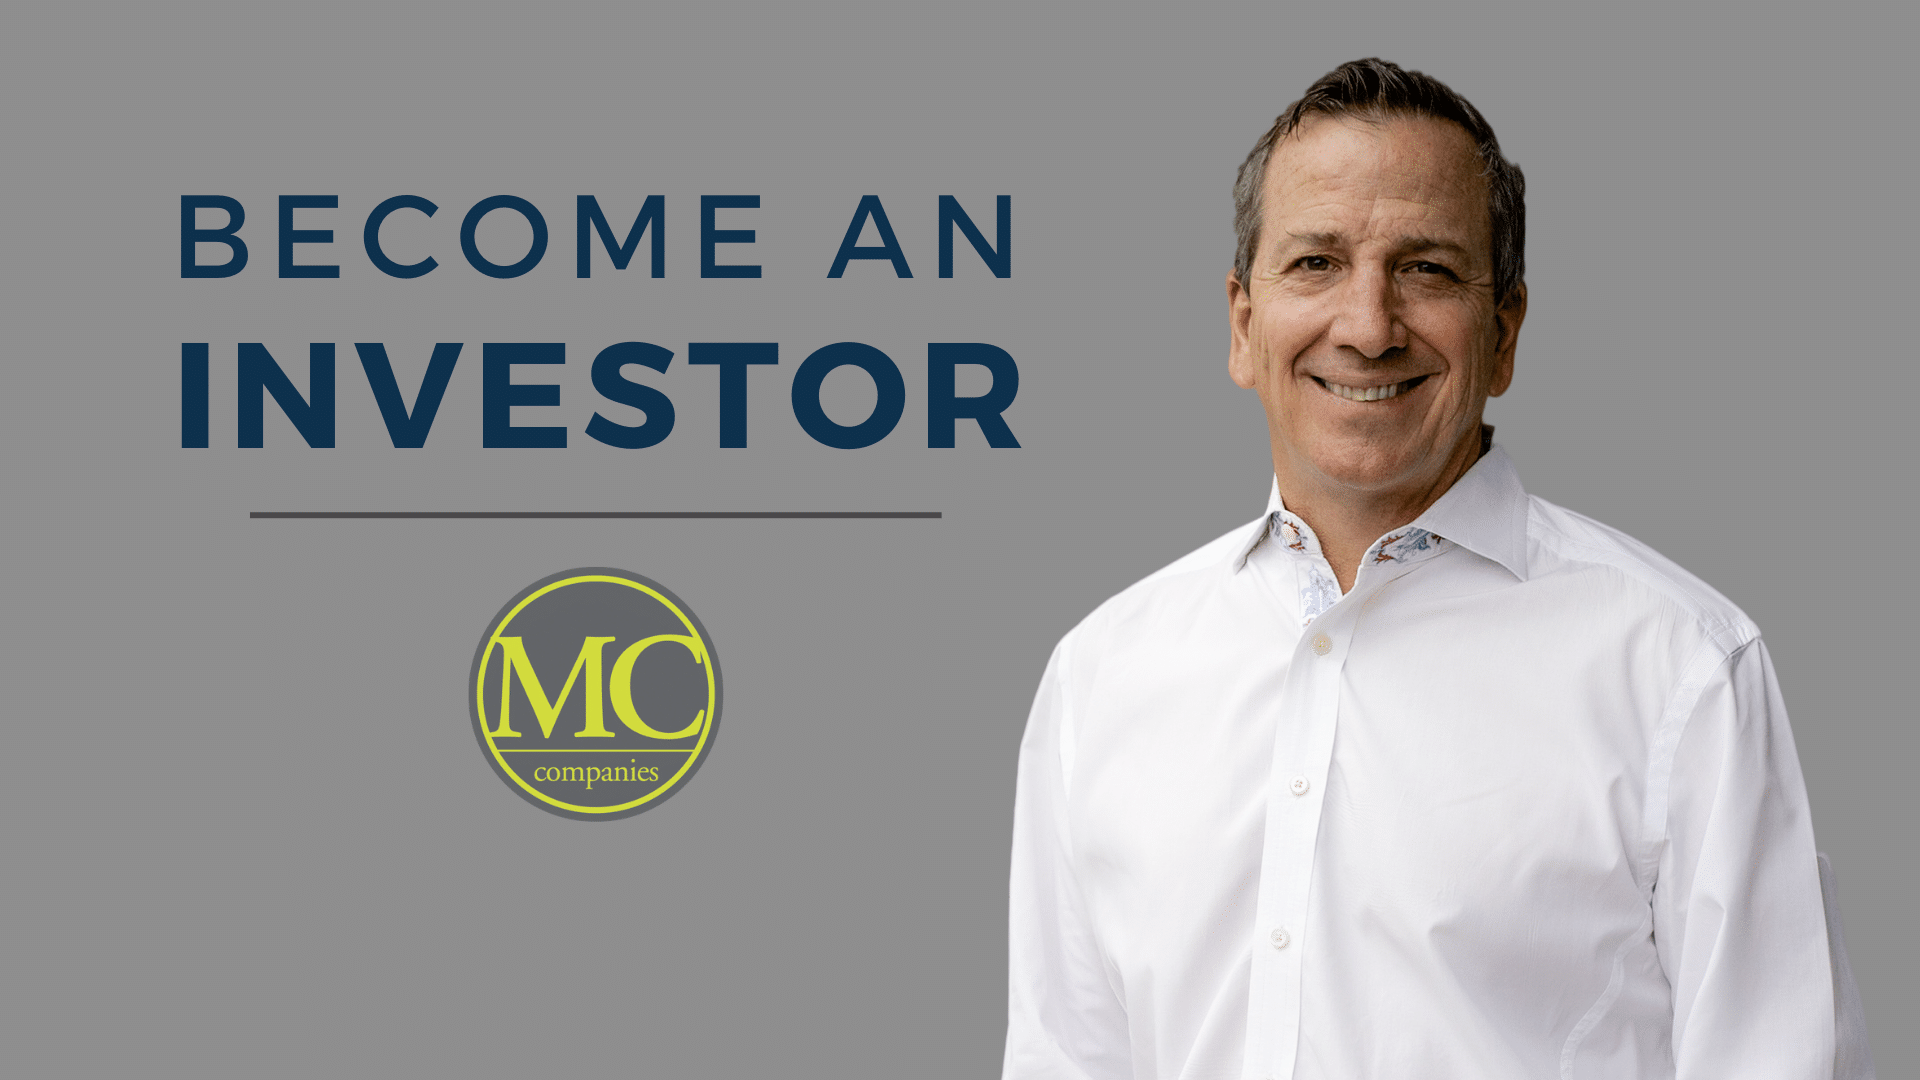 Become an Investor | Ken McElroy Image